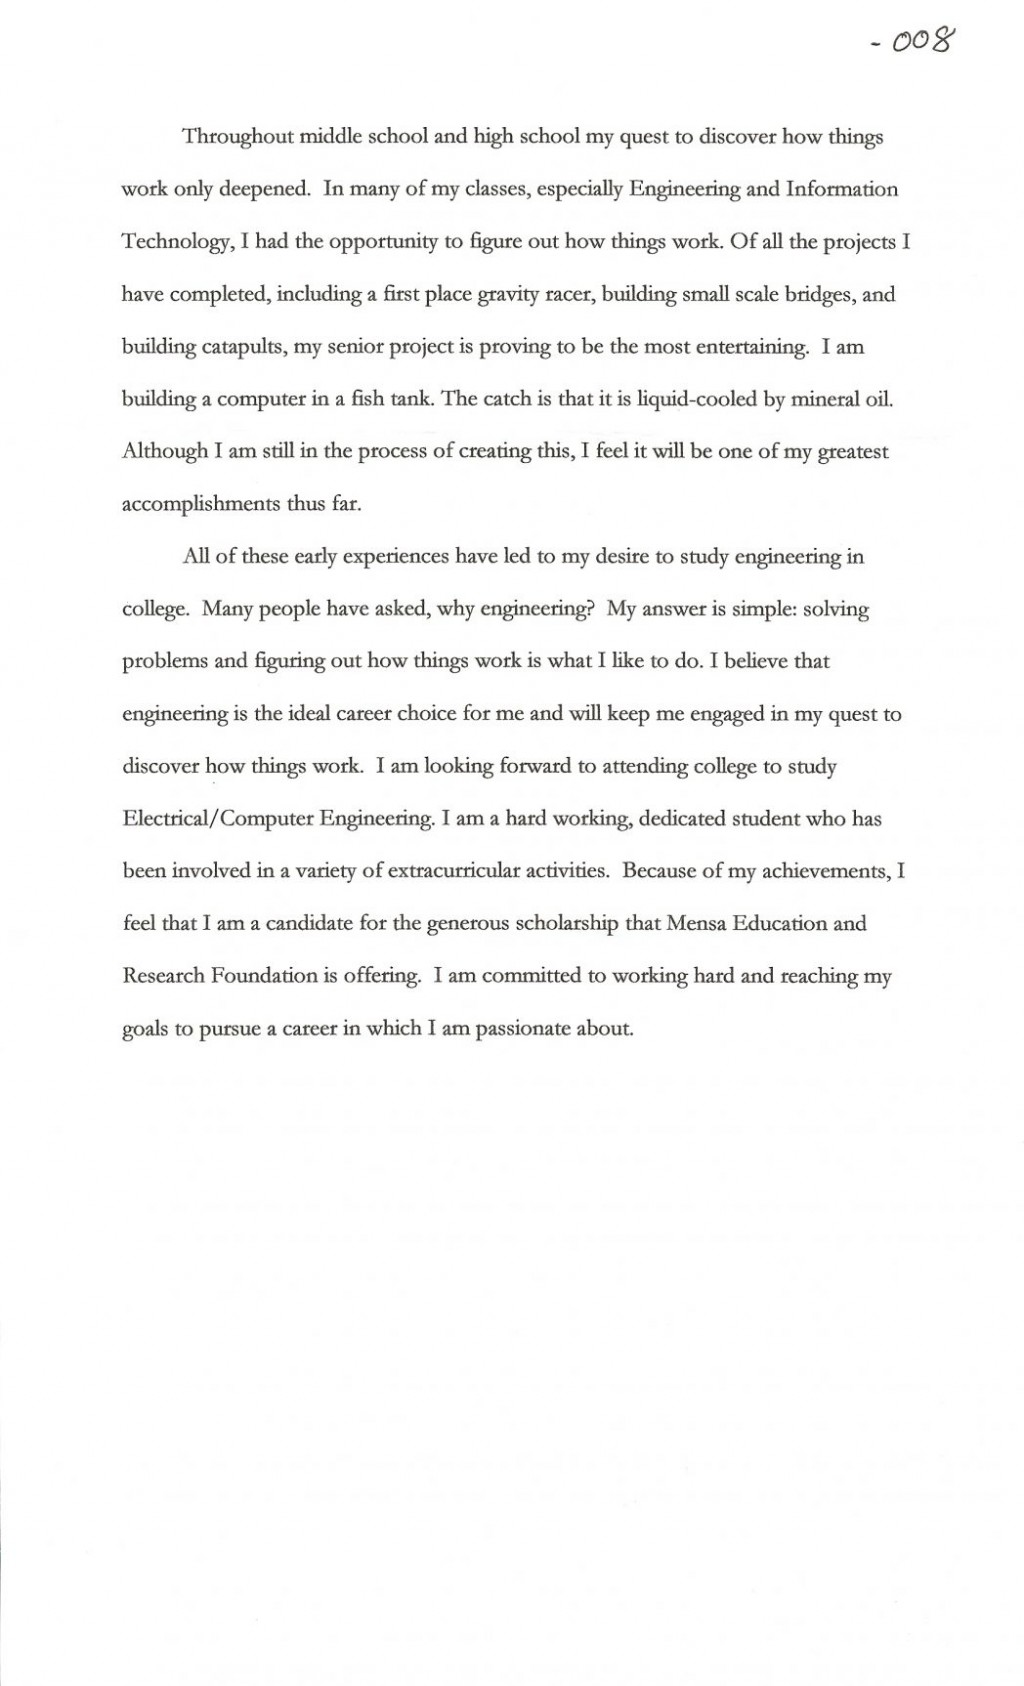 014 Sample Essay For Scholarship Scholarships Cover Letter Contests High School Juniors Joshua Cate No 1048x1726 Incredible Mara Personal Pdf Large